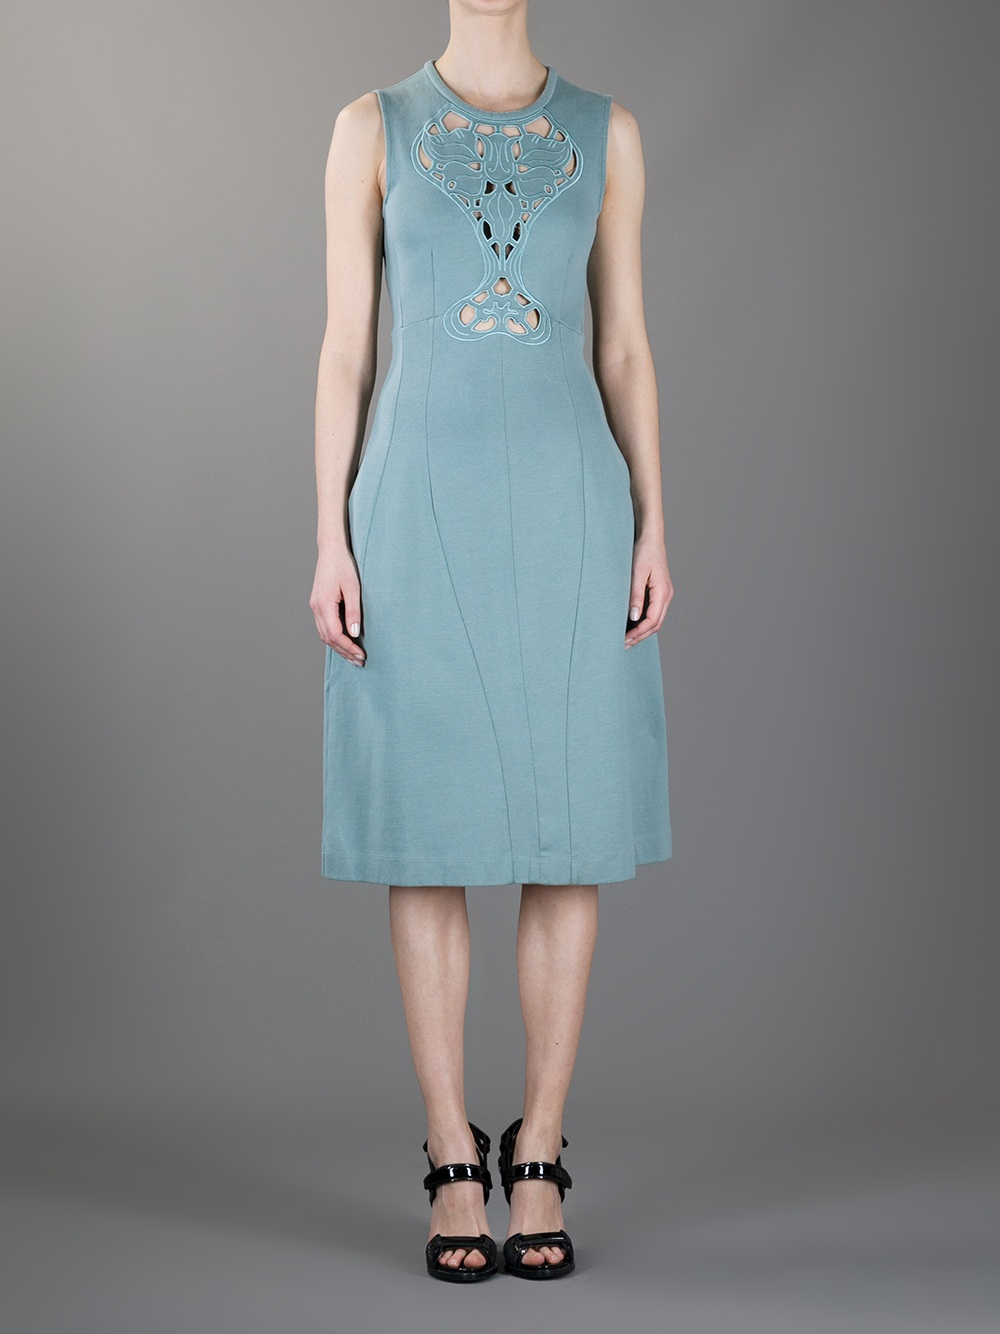 Carven Cut Out Embroidered Dress In Blue Lyst